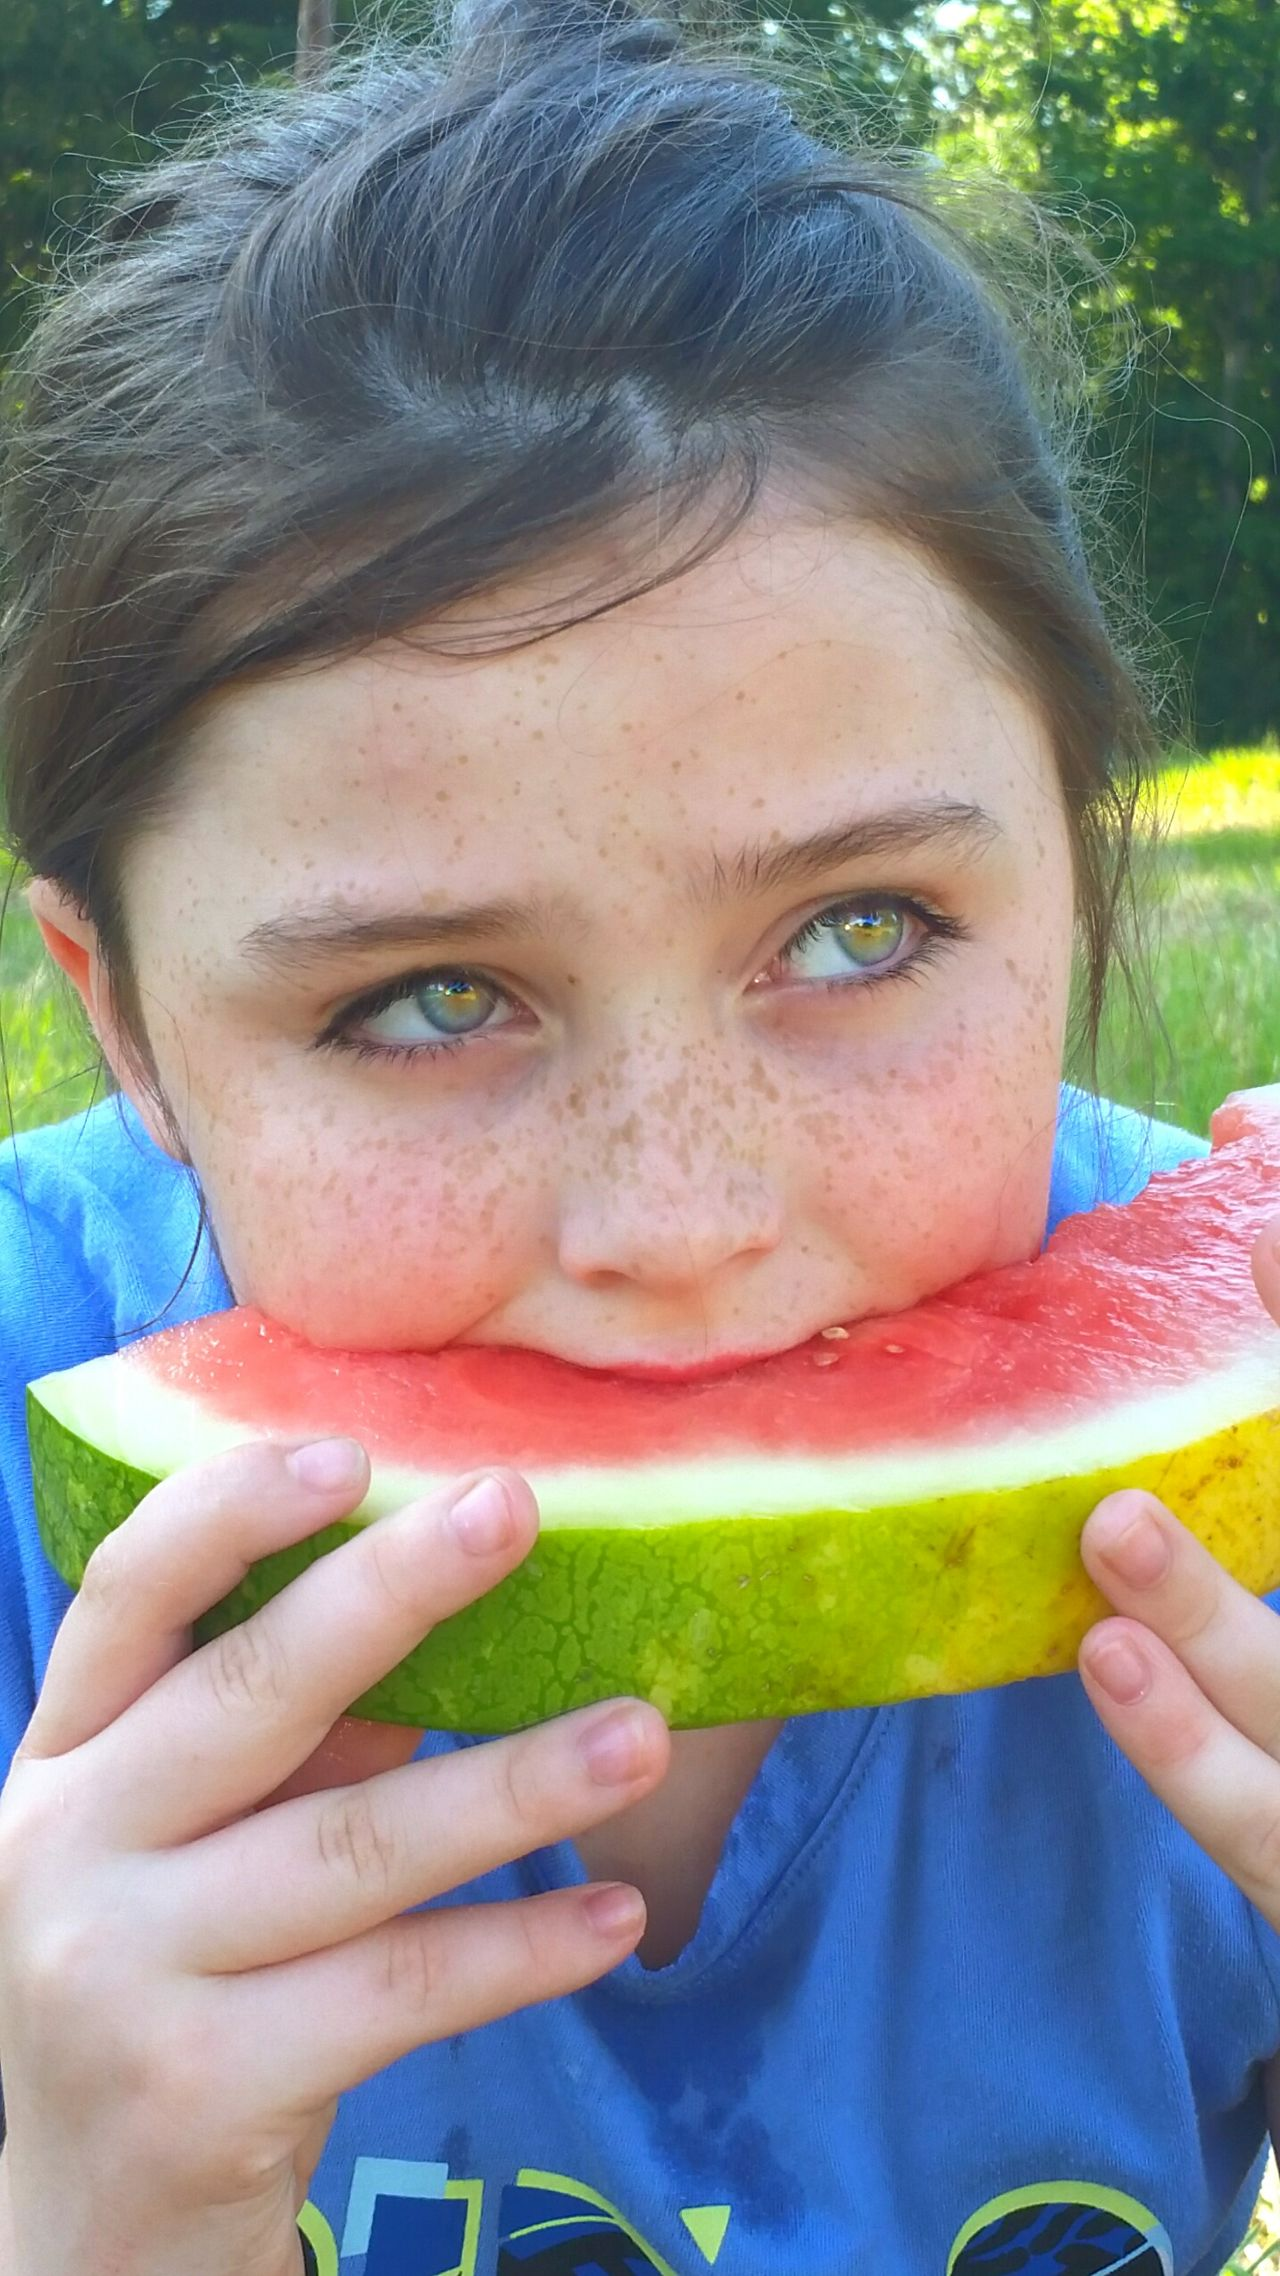 Watermelon Healthy Eating Front View Looking At Camera Portrait Summer Healthy Lifestyle Children Only Headshot One Person Smiling Child People Fruit Outdoors Eating Holding Leisure Activity Day Grass Eating Watermelon Slice Of Melon Summertime SLICE Food The Portraitist - 2017 EyeEm Awards Visual Feast Live For The Story Place Of Heart